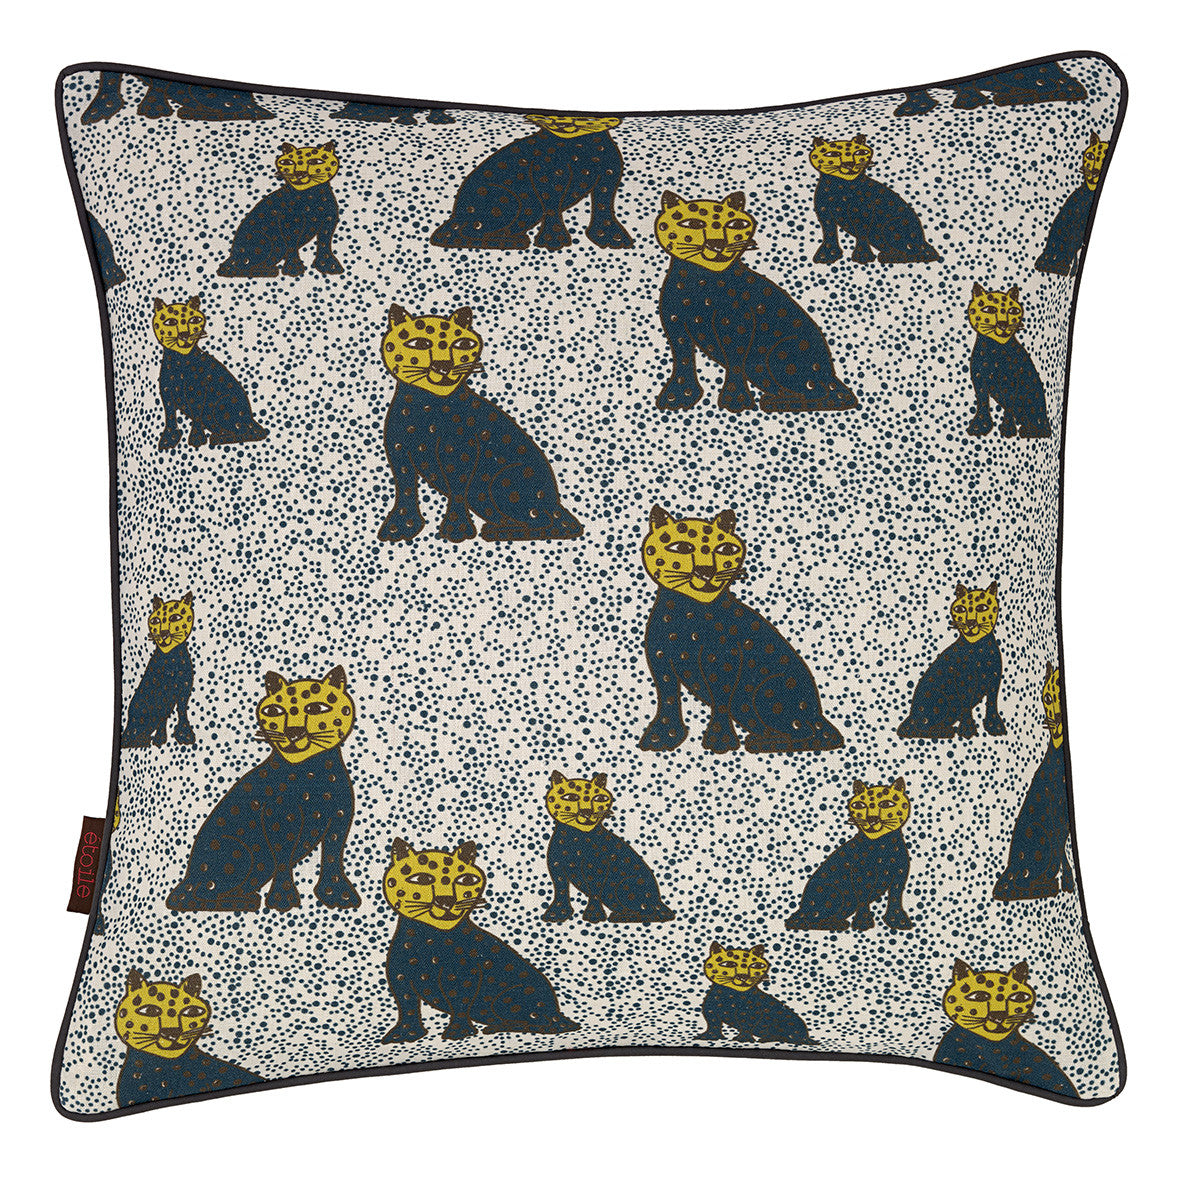 "Graphic Leopard Pattern Linen Union Printed Cushion in Petrol Blue and Chartreuse Yellow 45x45cm (18x18"")"